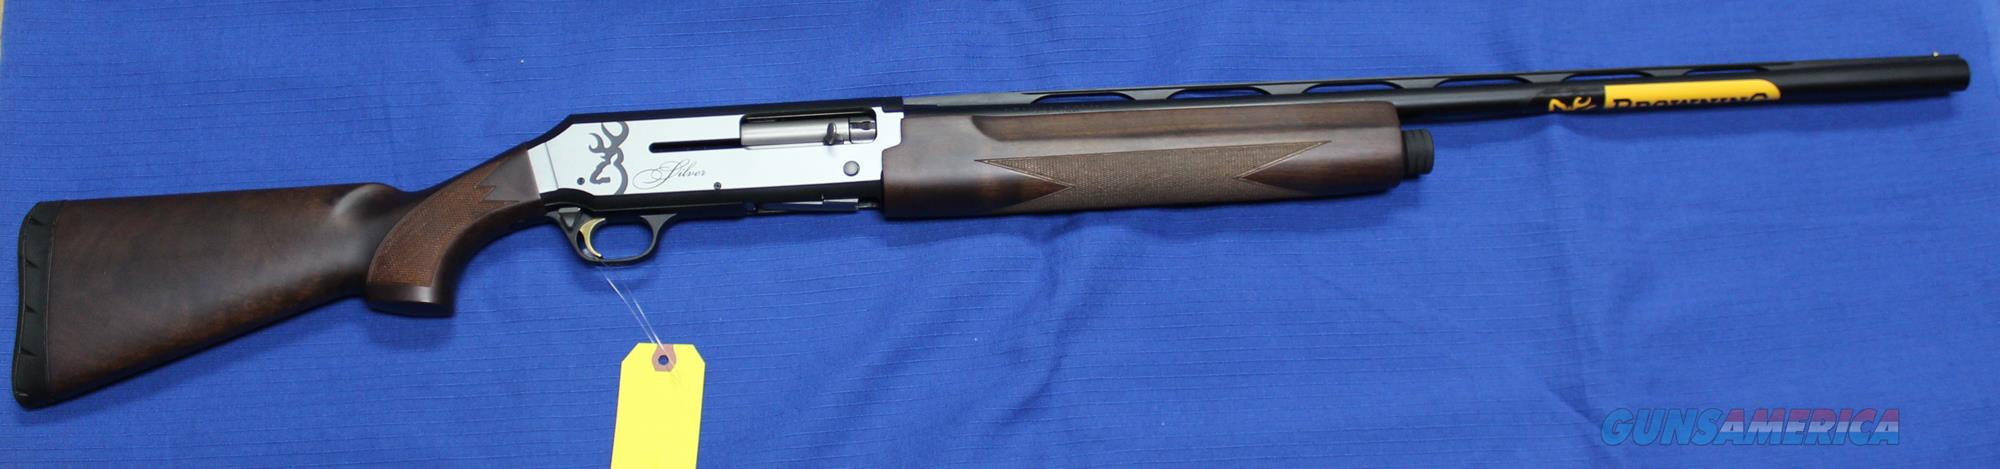 BROWNING SILVER FIELD MICRO MIDAS 20 GA 3 INCH 26 INCH INVECTOR PLUS NEW IN THE BOX  Guns > Shotguns > Browning Shotguns > Autoloaders > Hunting